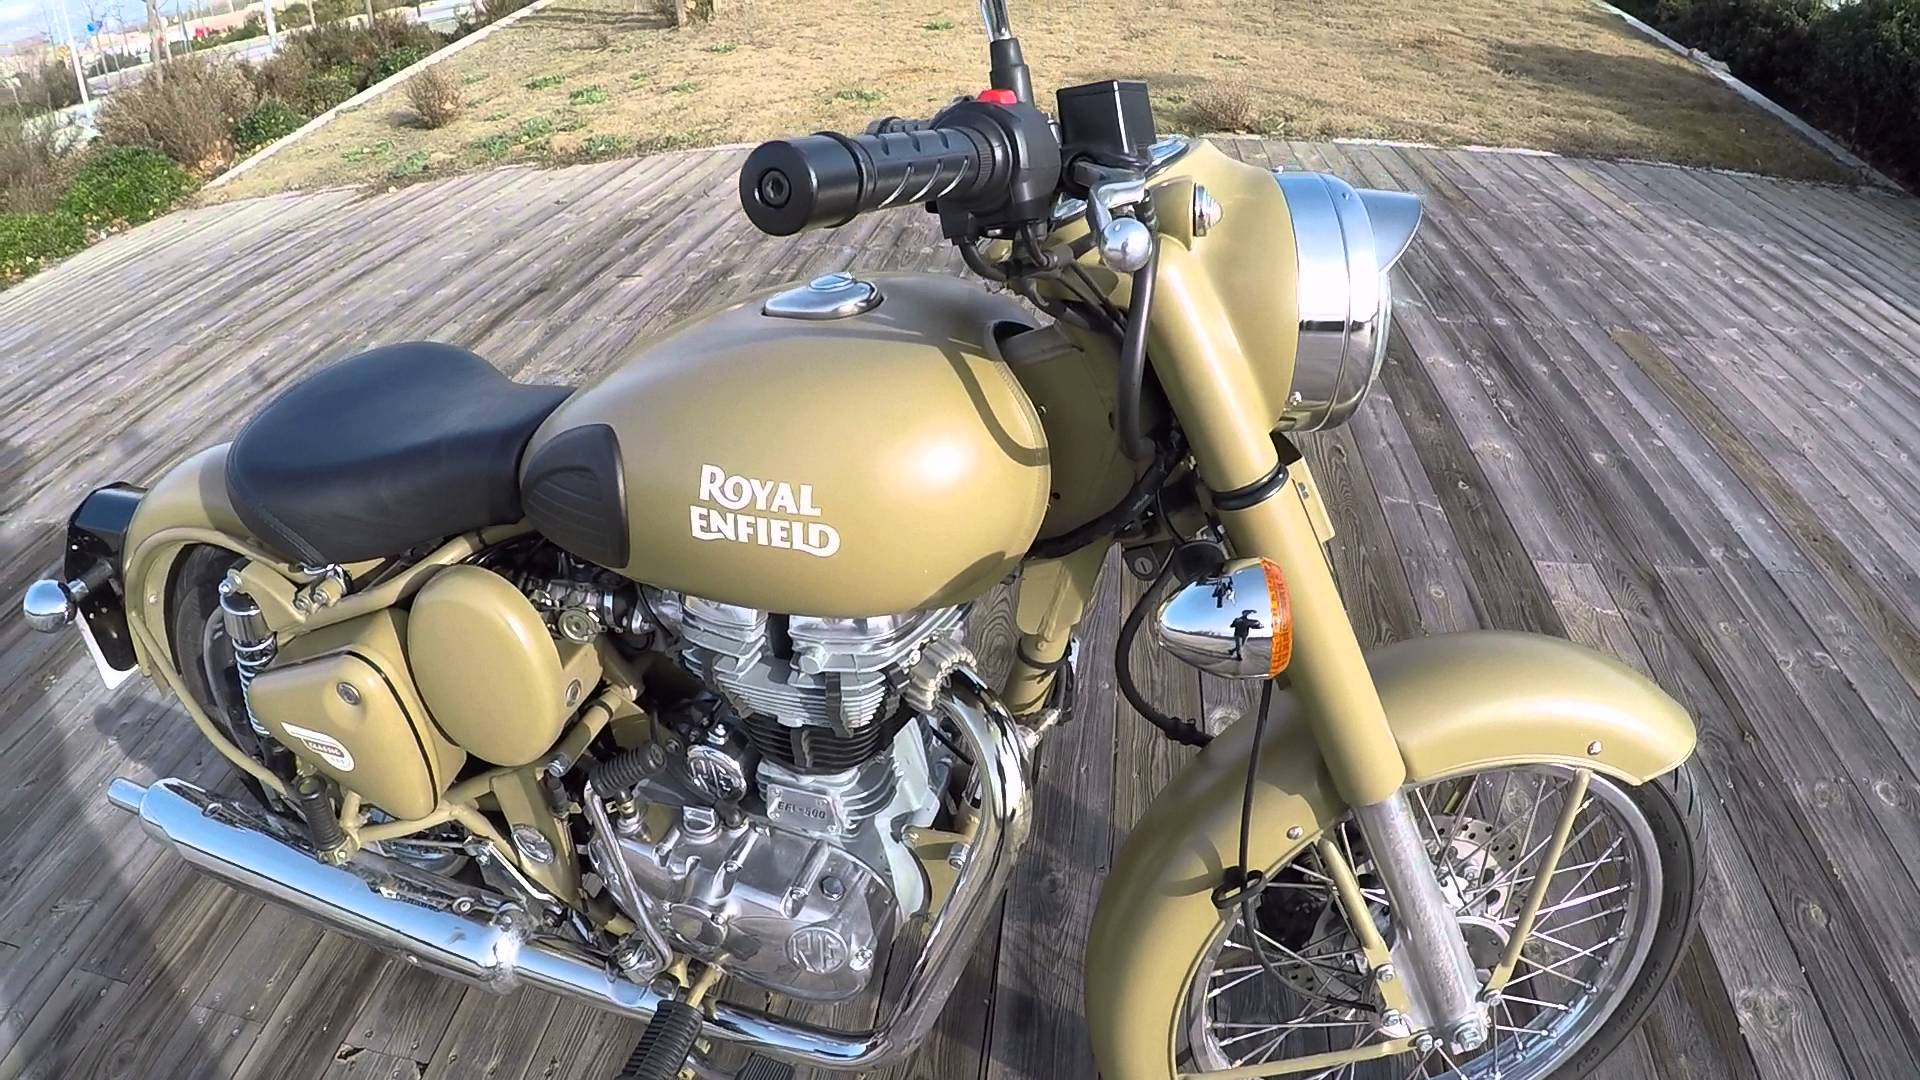 Enfield Bullet 500 Classic #6